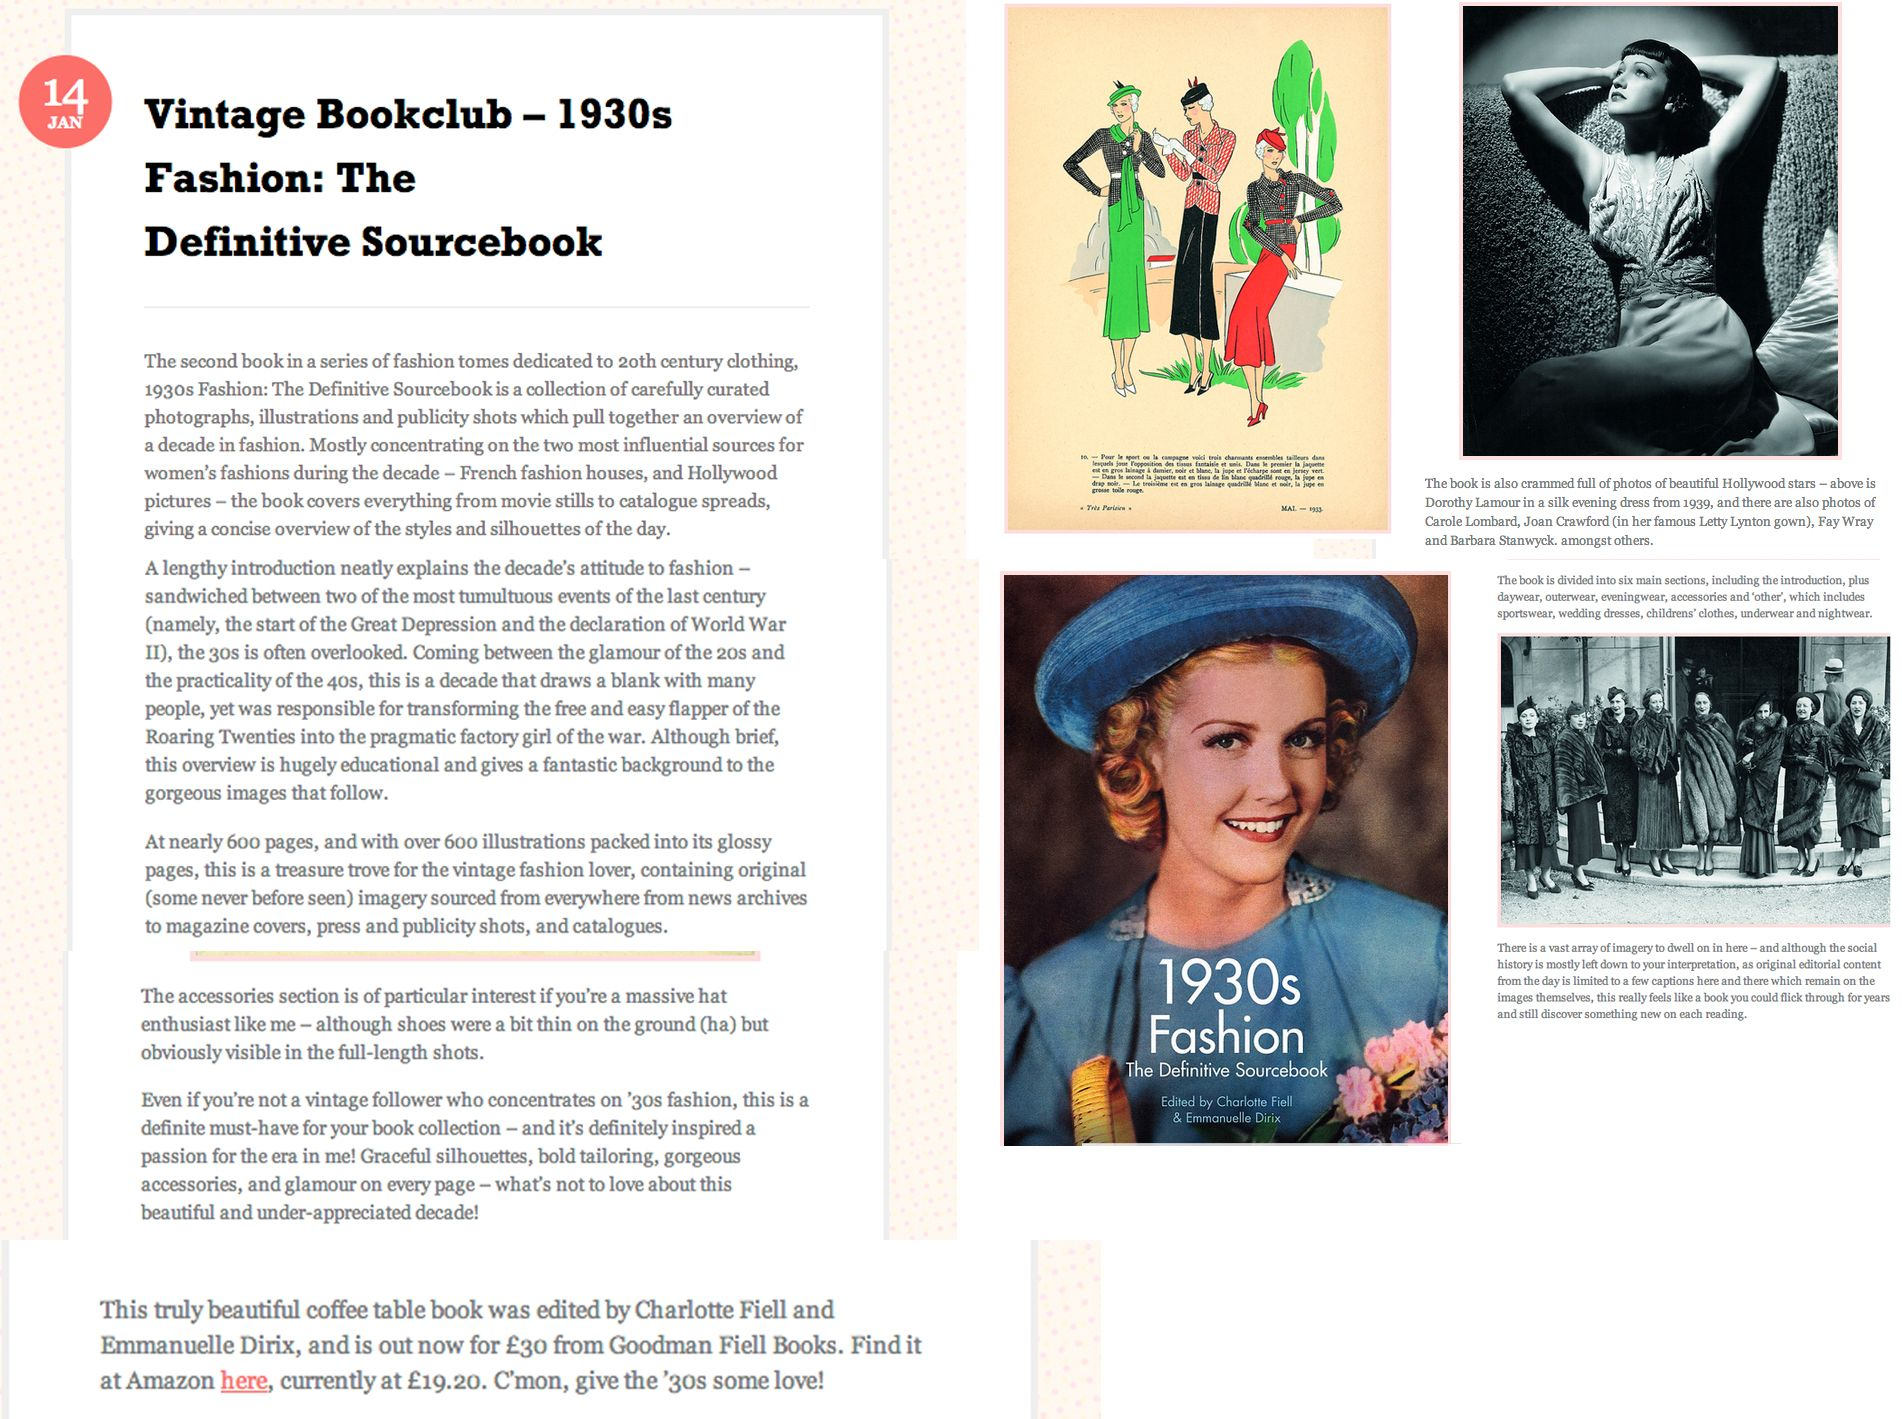 1930s Fashion: The Definitive Sourcebook, Food Fash Fit blog review